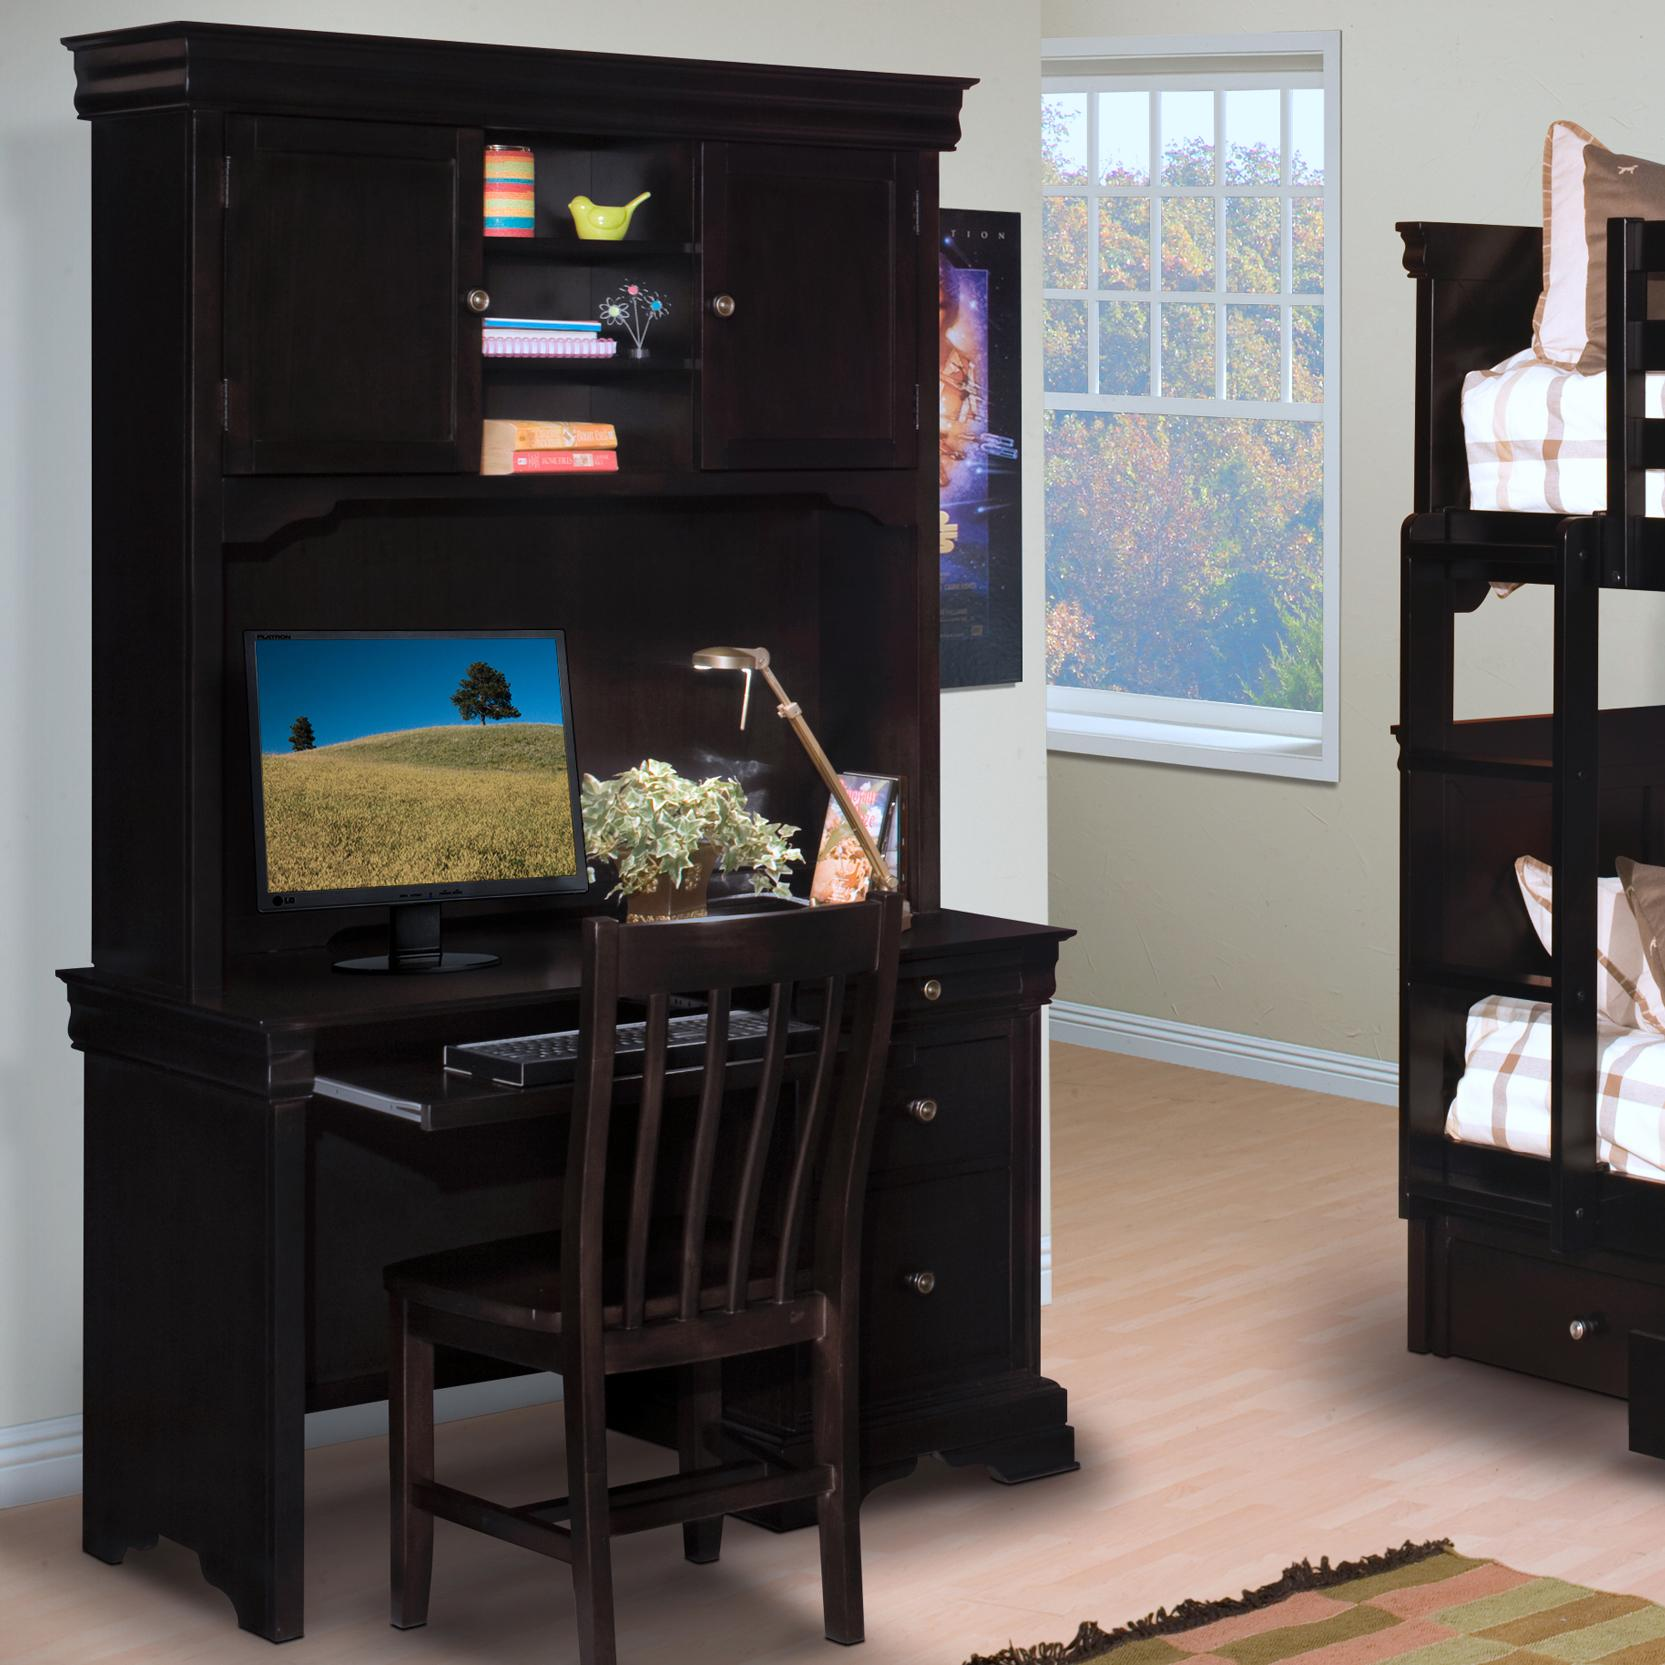 belle rose single men Shop for the new classic belle rose youth desk and hutch at a1 furniture & mattress - your madison, wi furniture & mattress store.